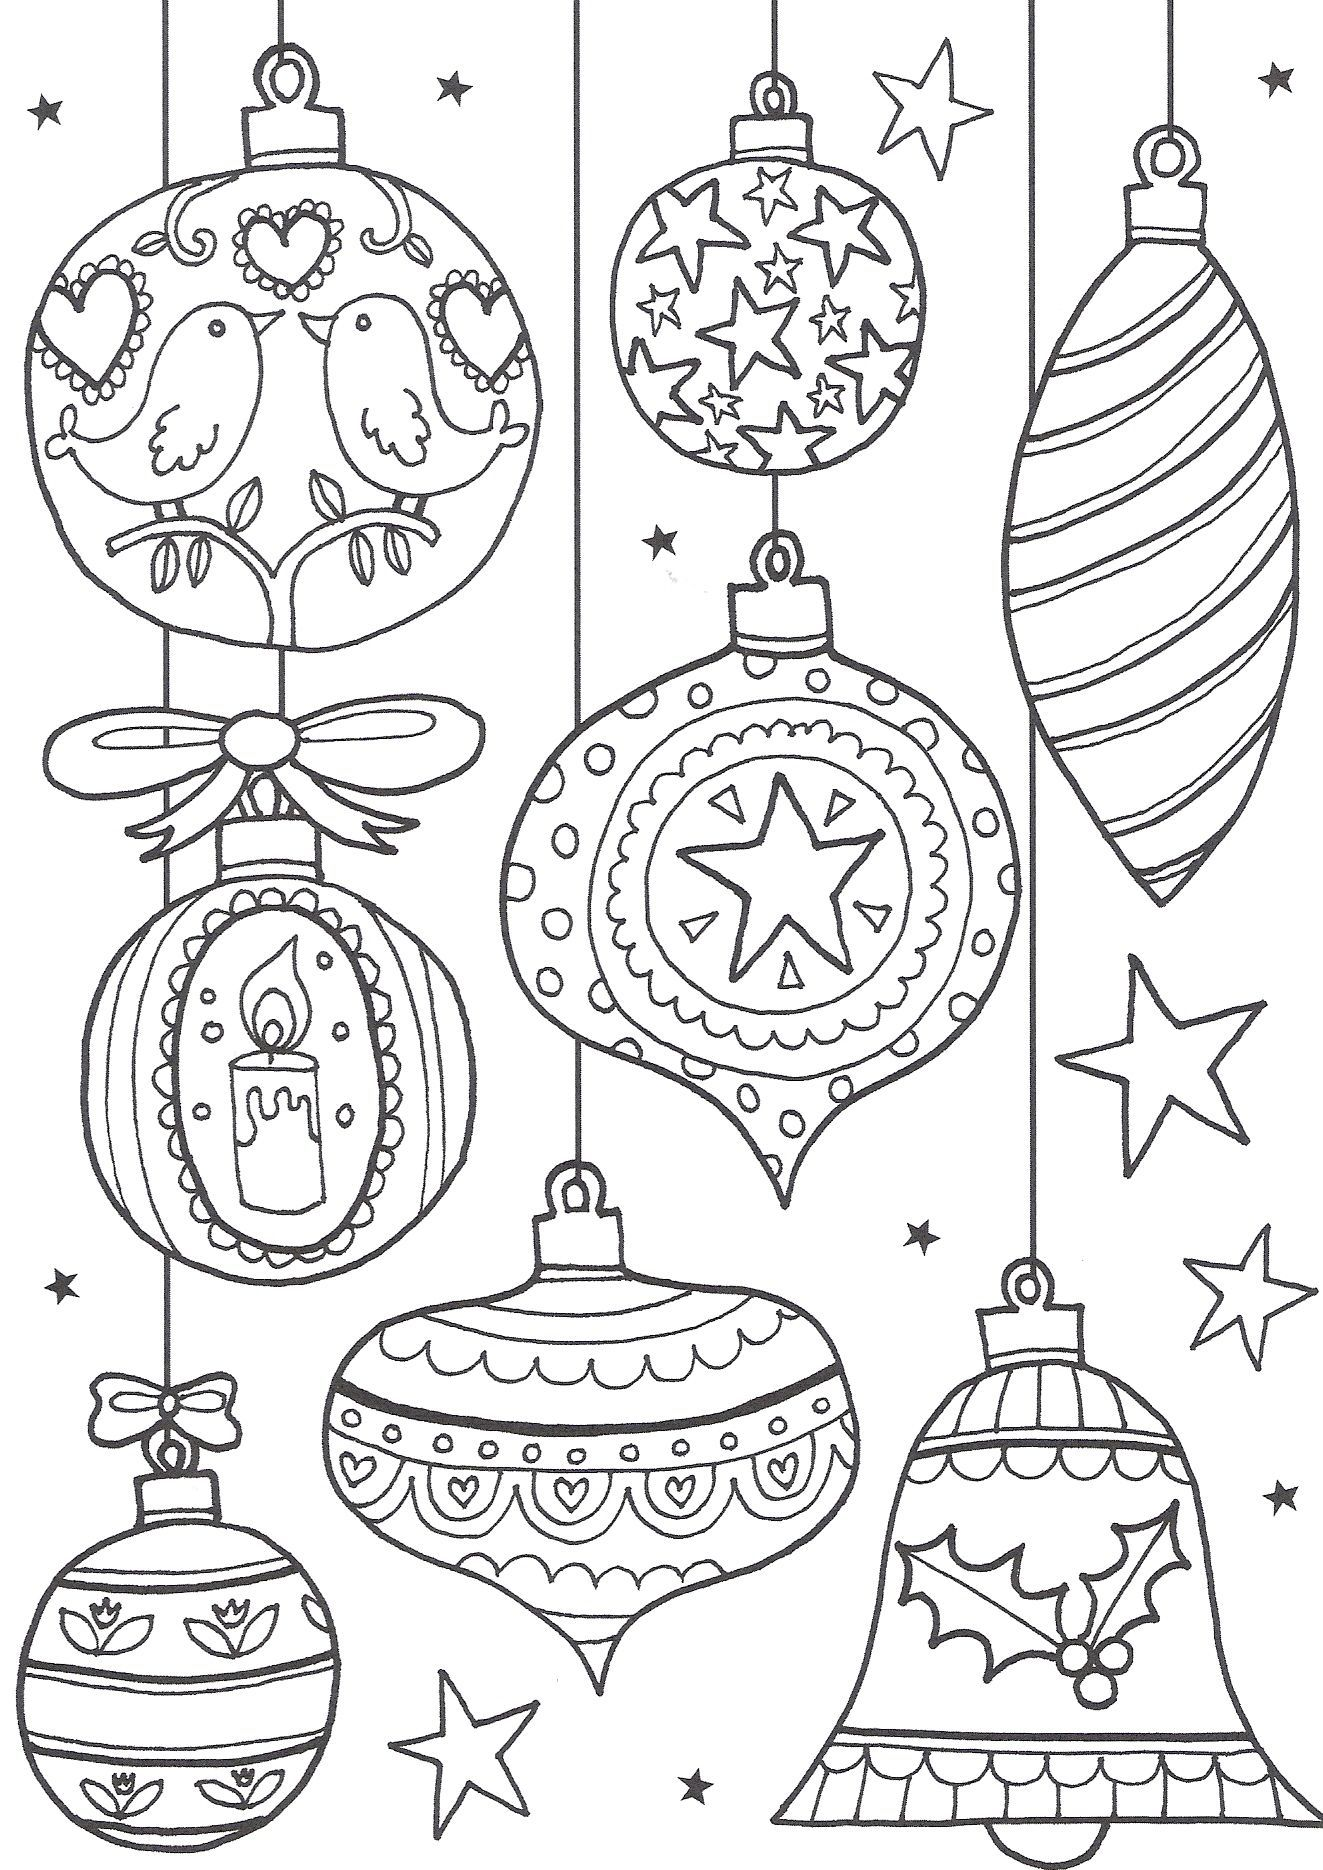 Christmas Coloring Pages For Kids Adults In 2020 Free Christmas Coloring Pages Christmas Colors Colouring Pages